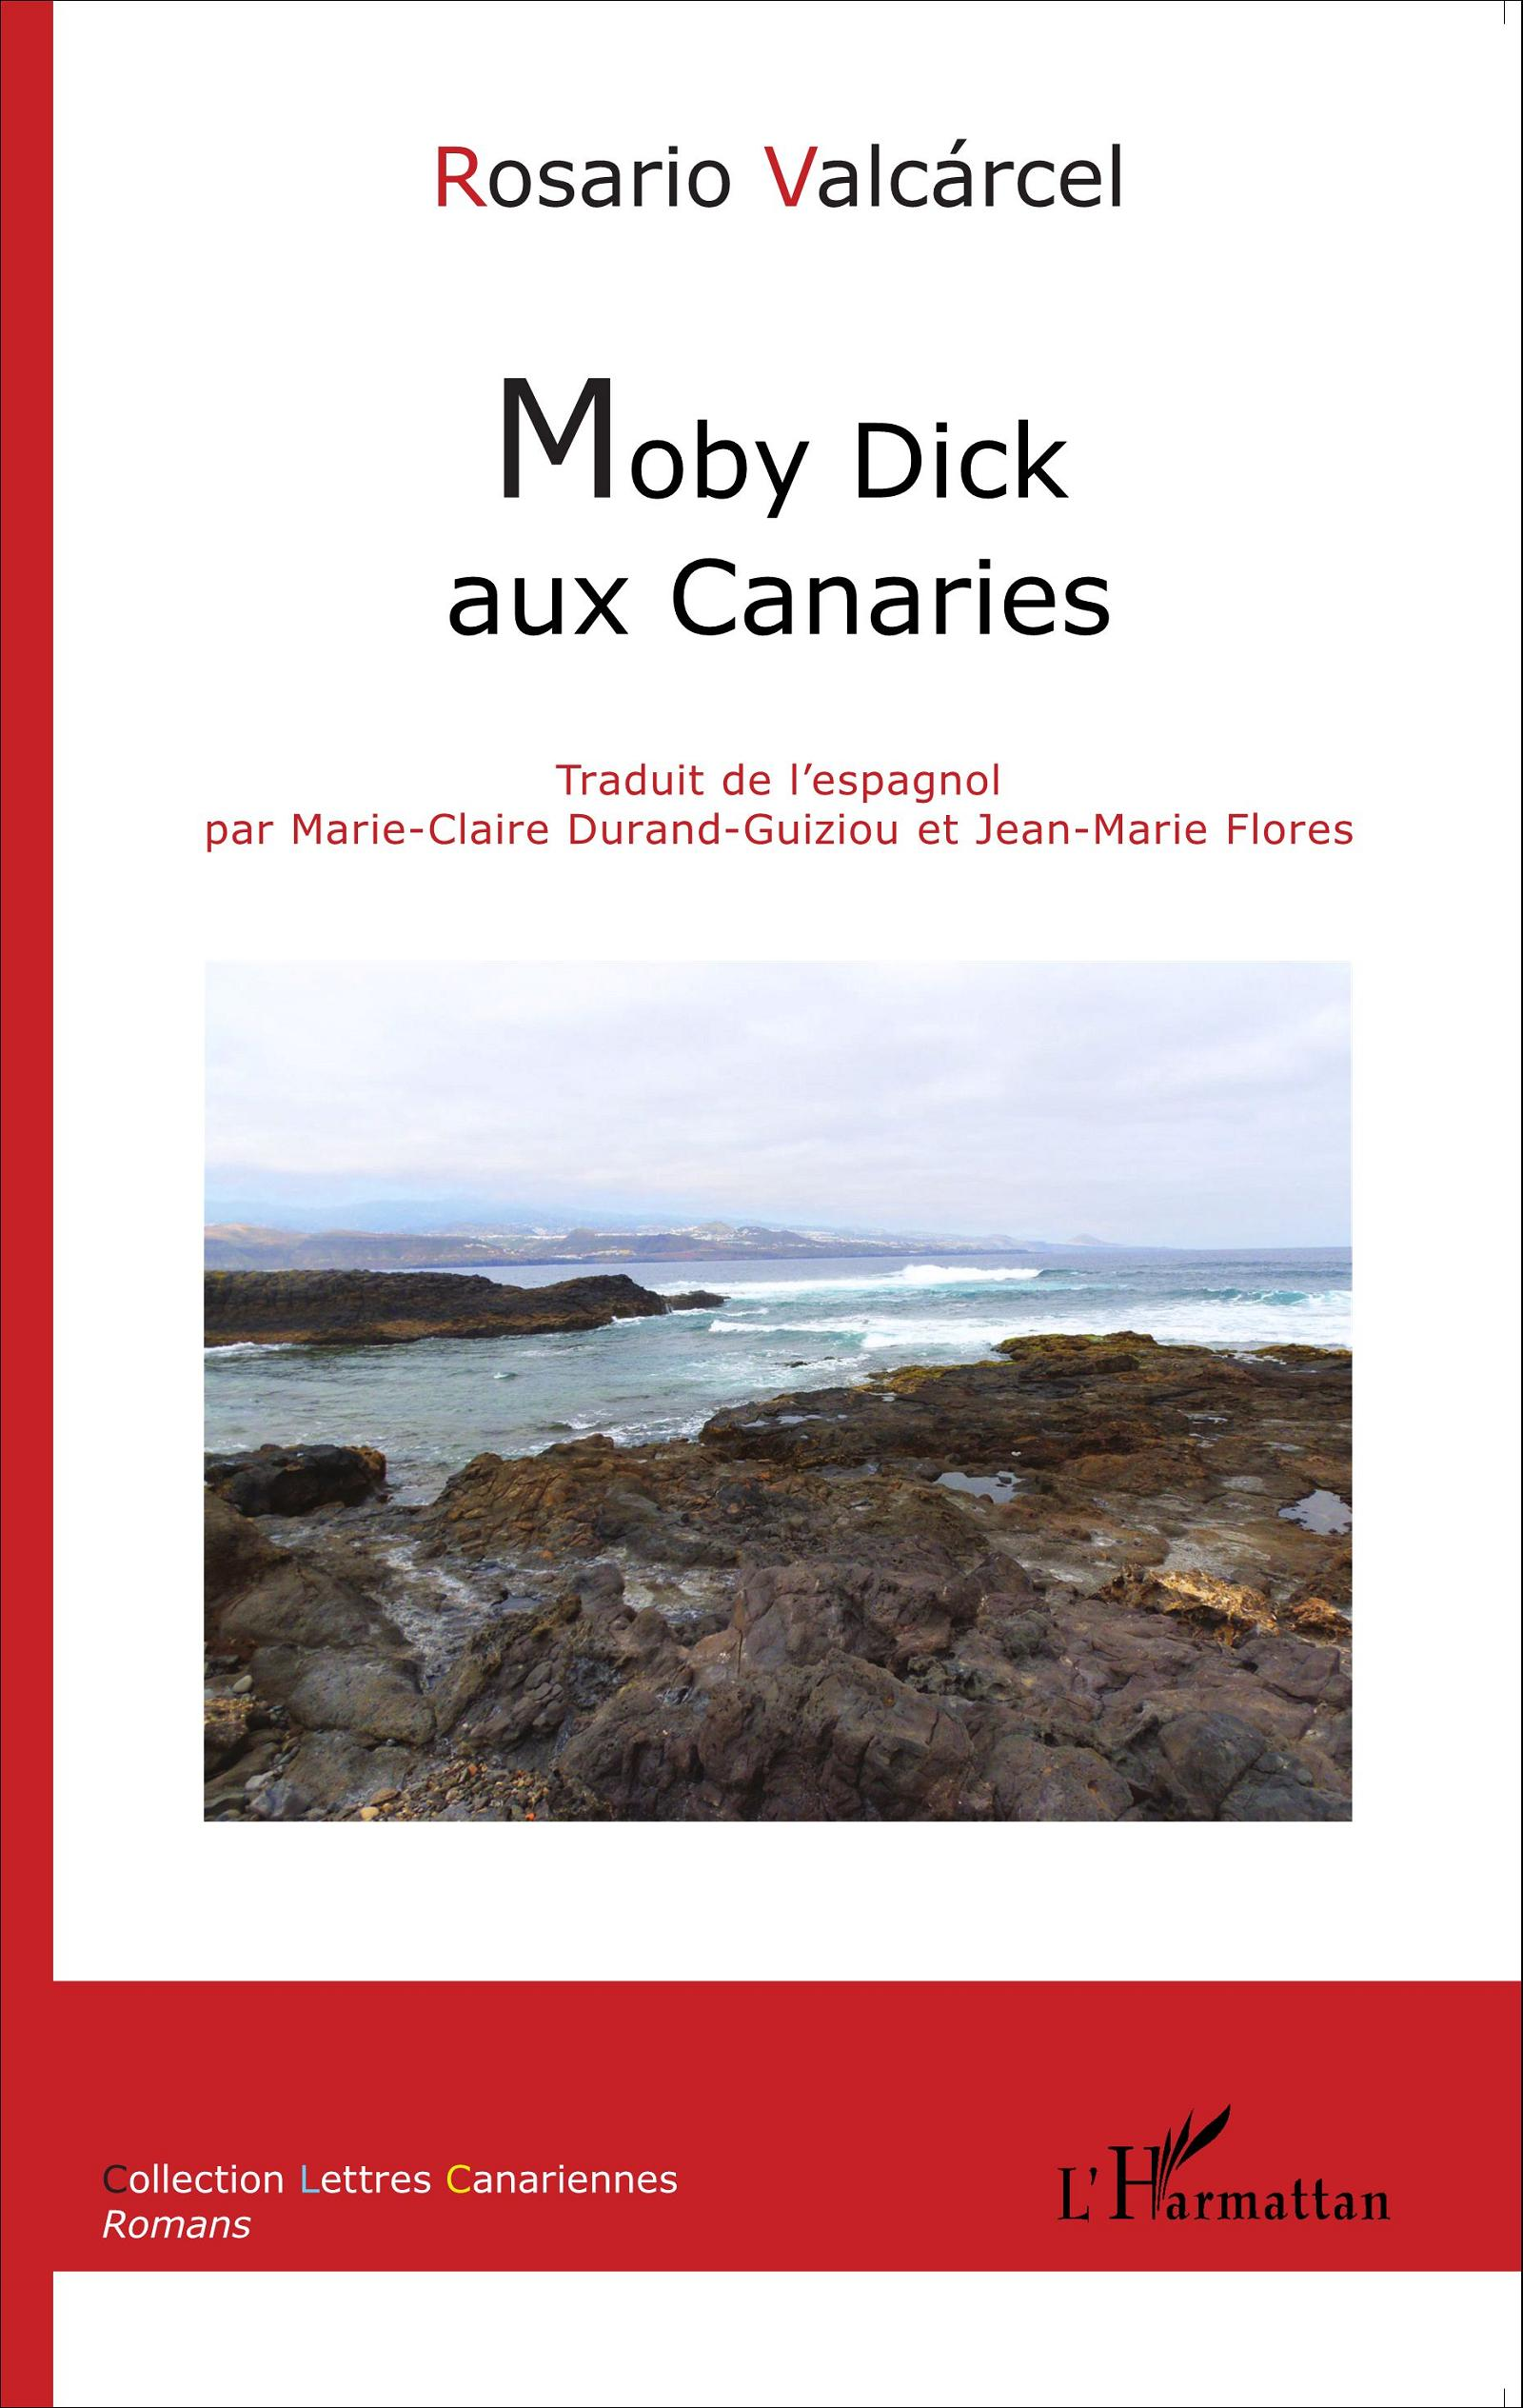 Moby Dick aux Canaries